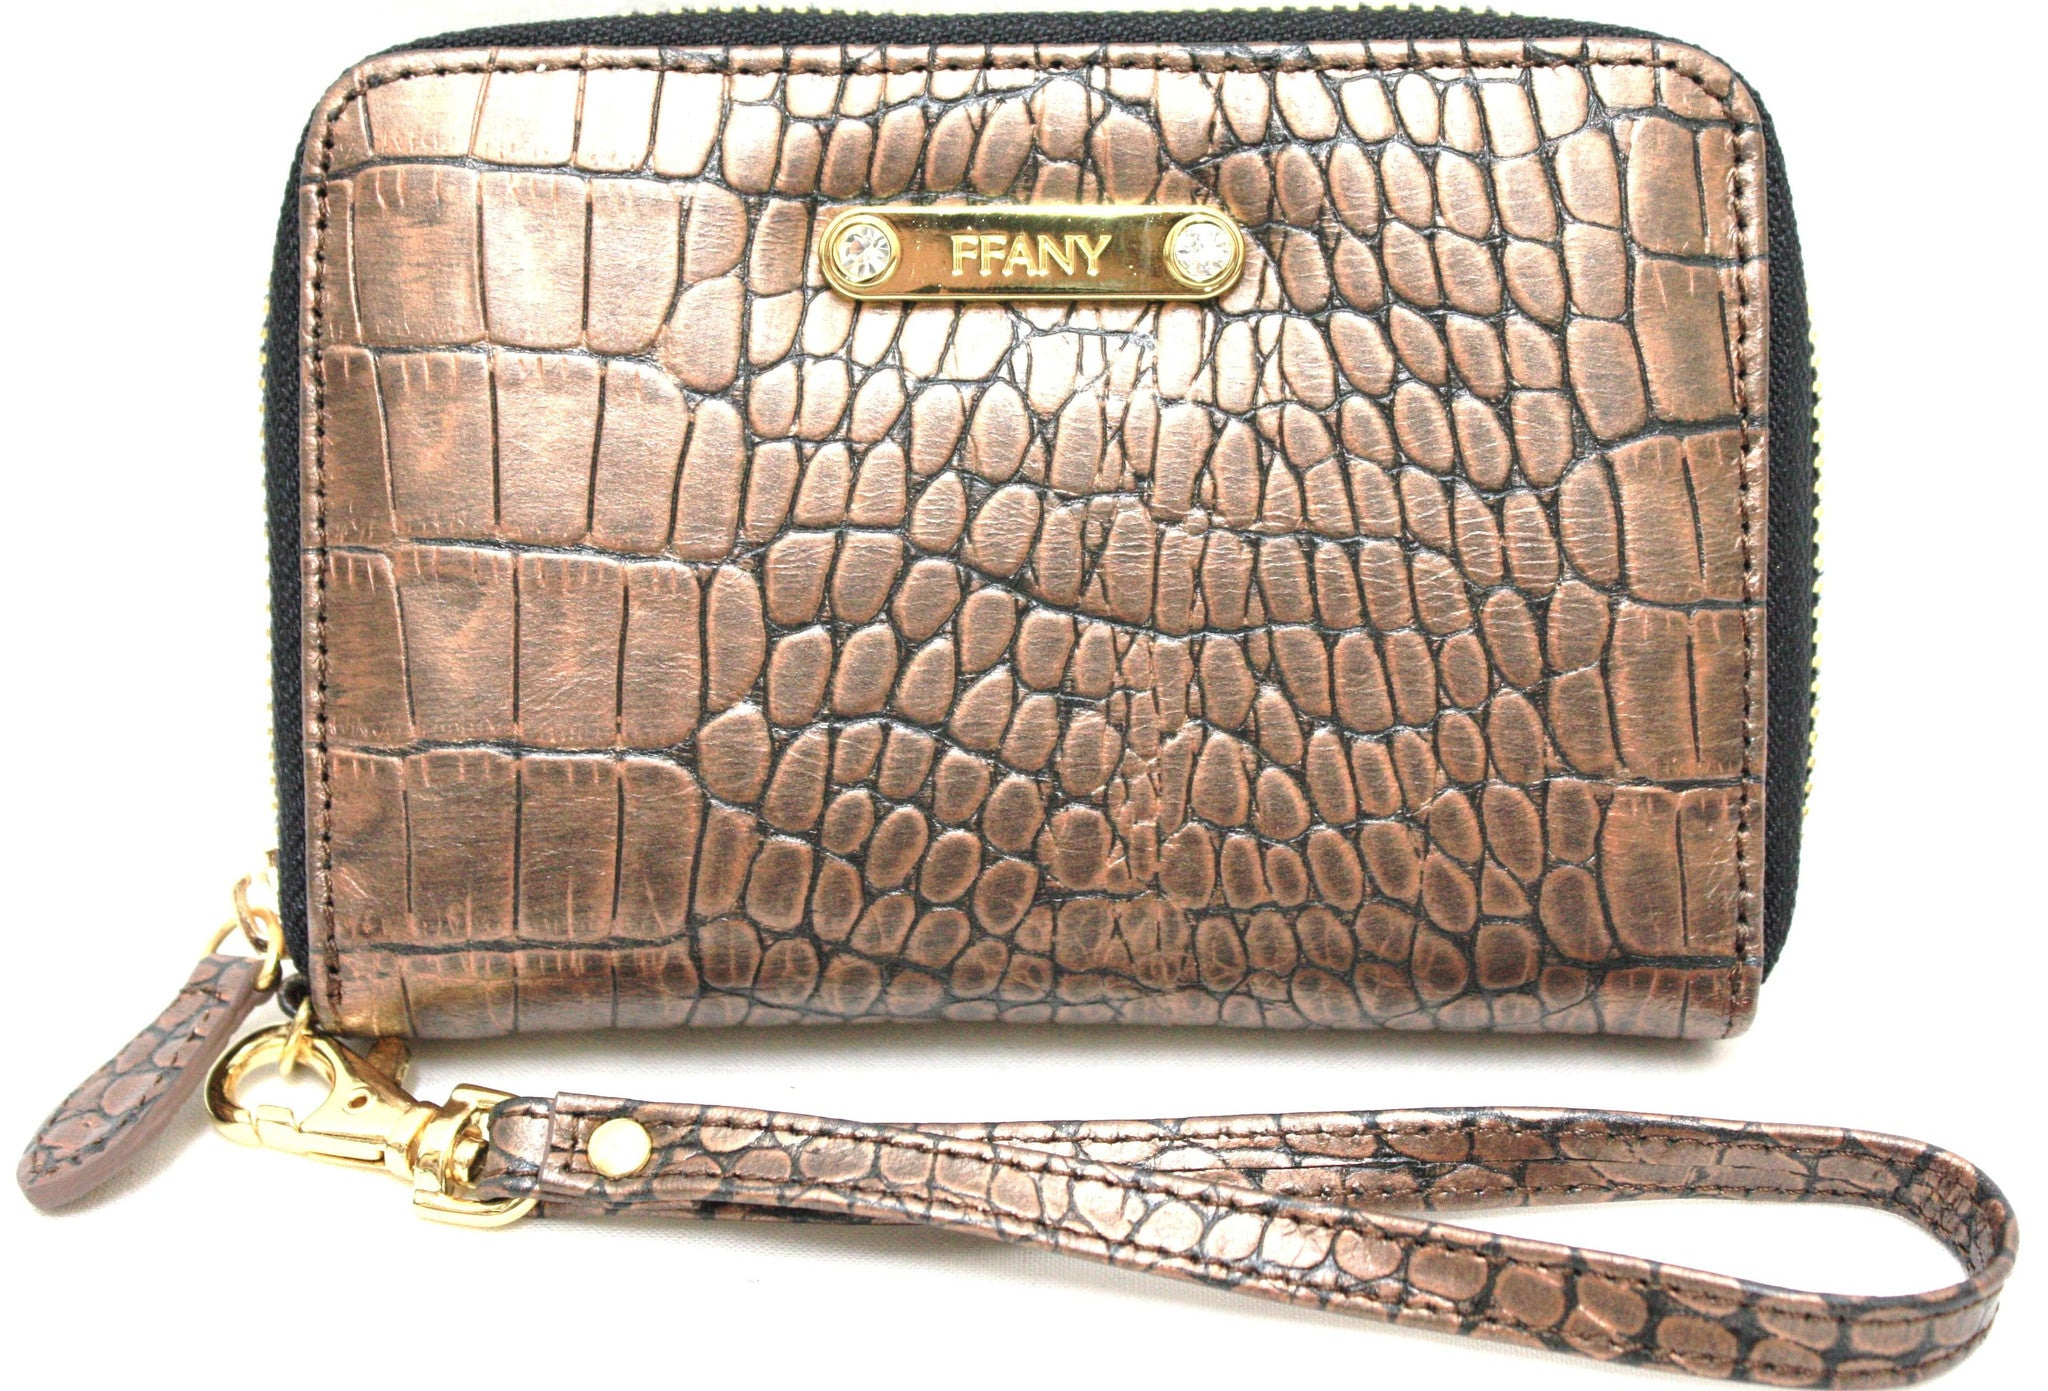 Home   Products   2390140 FFANY Exclusive Chic Short Alligator Embossed  Genuine Leather Zip Around Wallet Clearance 36d89d68de644